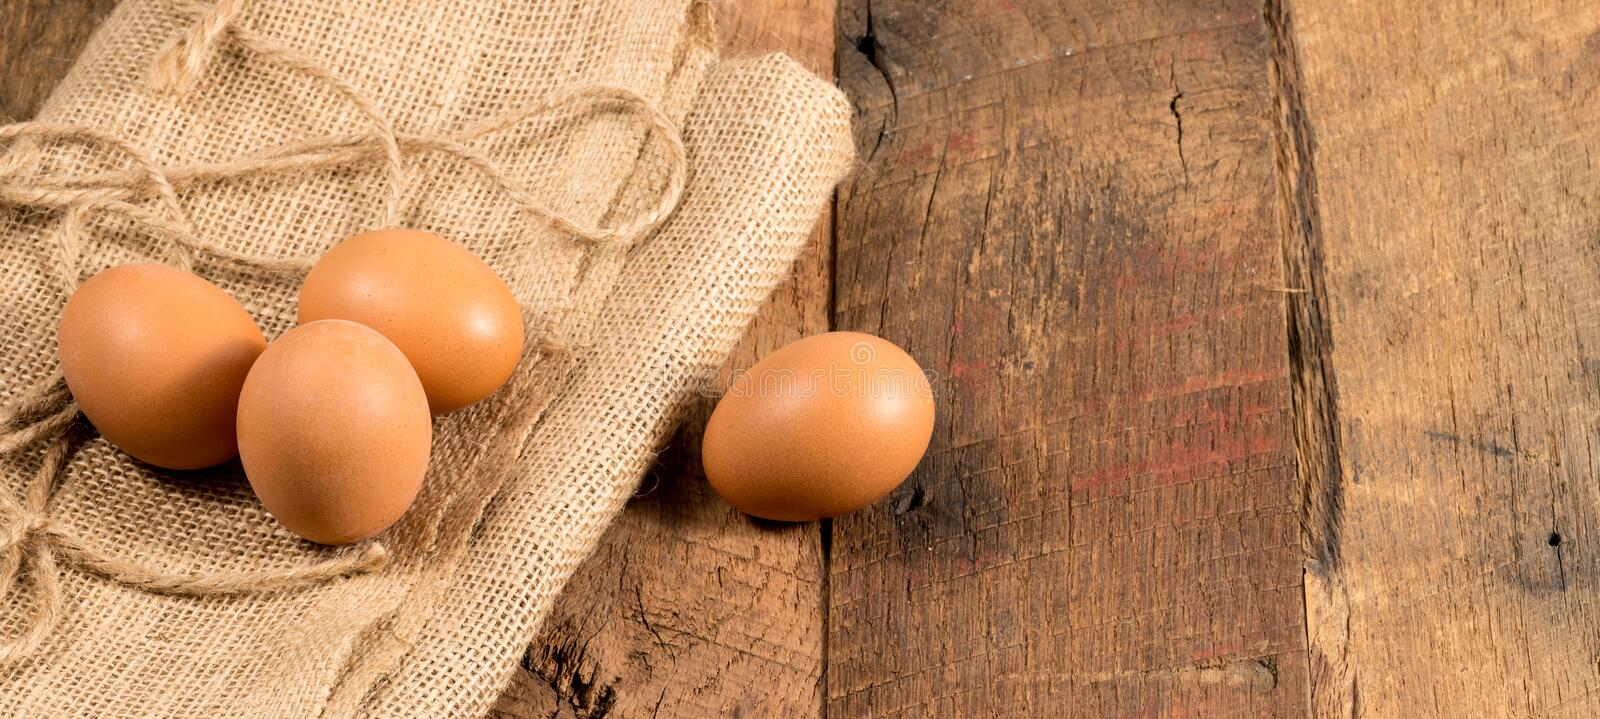 Freshly laid organic eggs on wooden bench. Easter background with brown organic eggs arranged on burlap sack on rustic wooden table stock photo